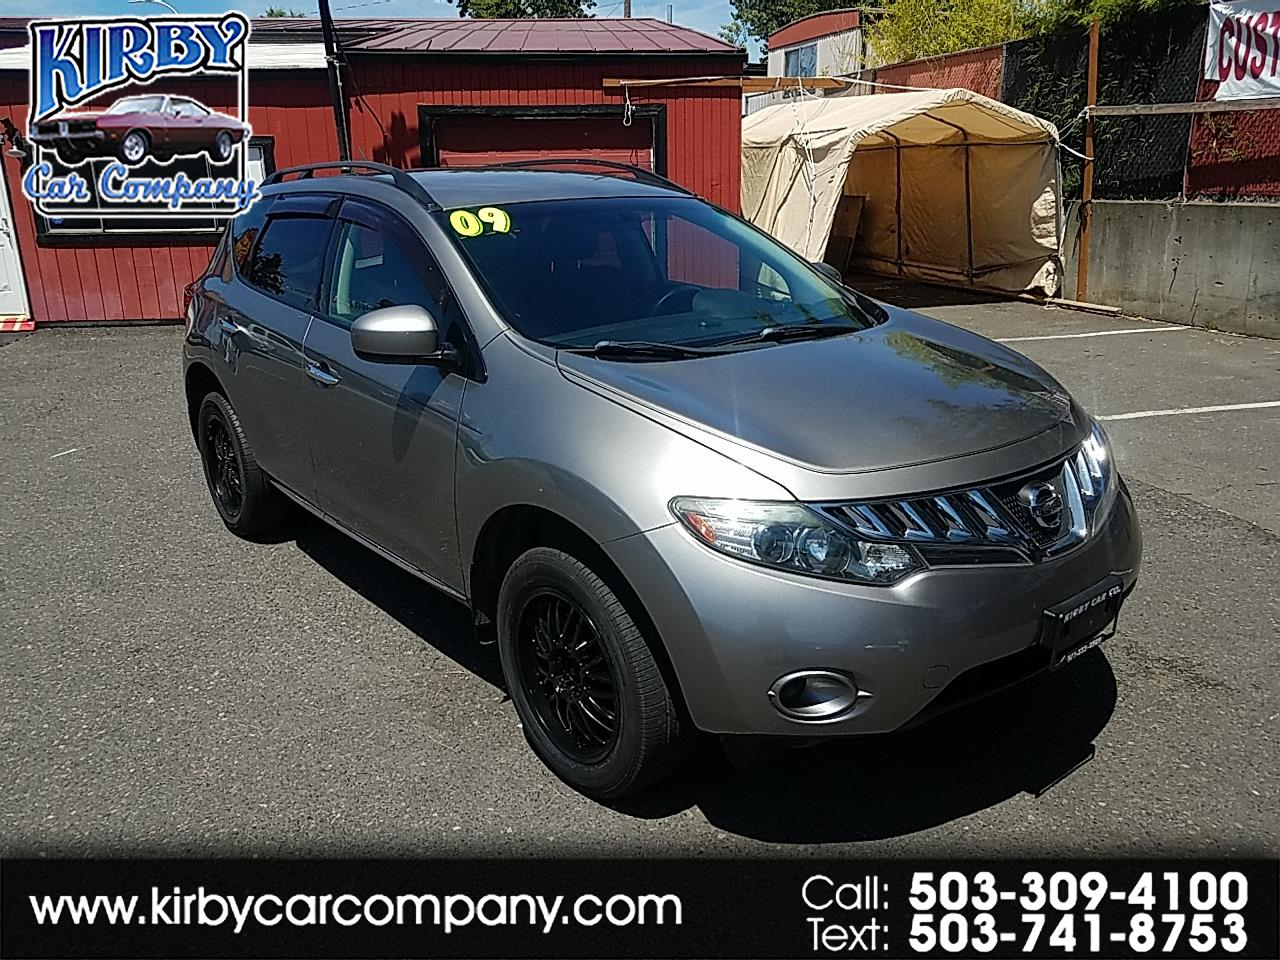 2009 Nissan Murano S 4D SUV CLEAN TITLE/CARFAX!  21 SVC RECORDS!